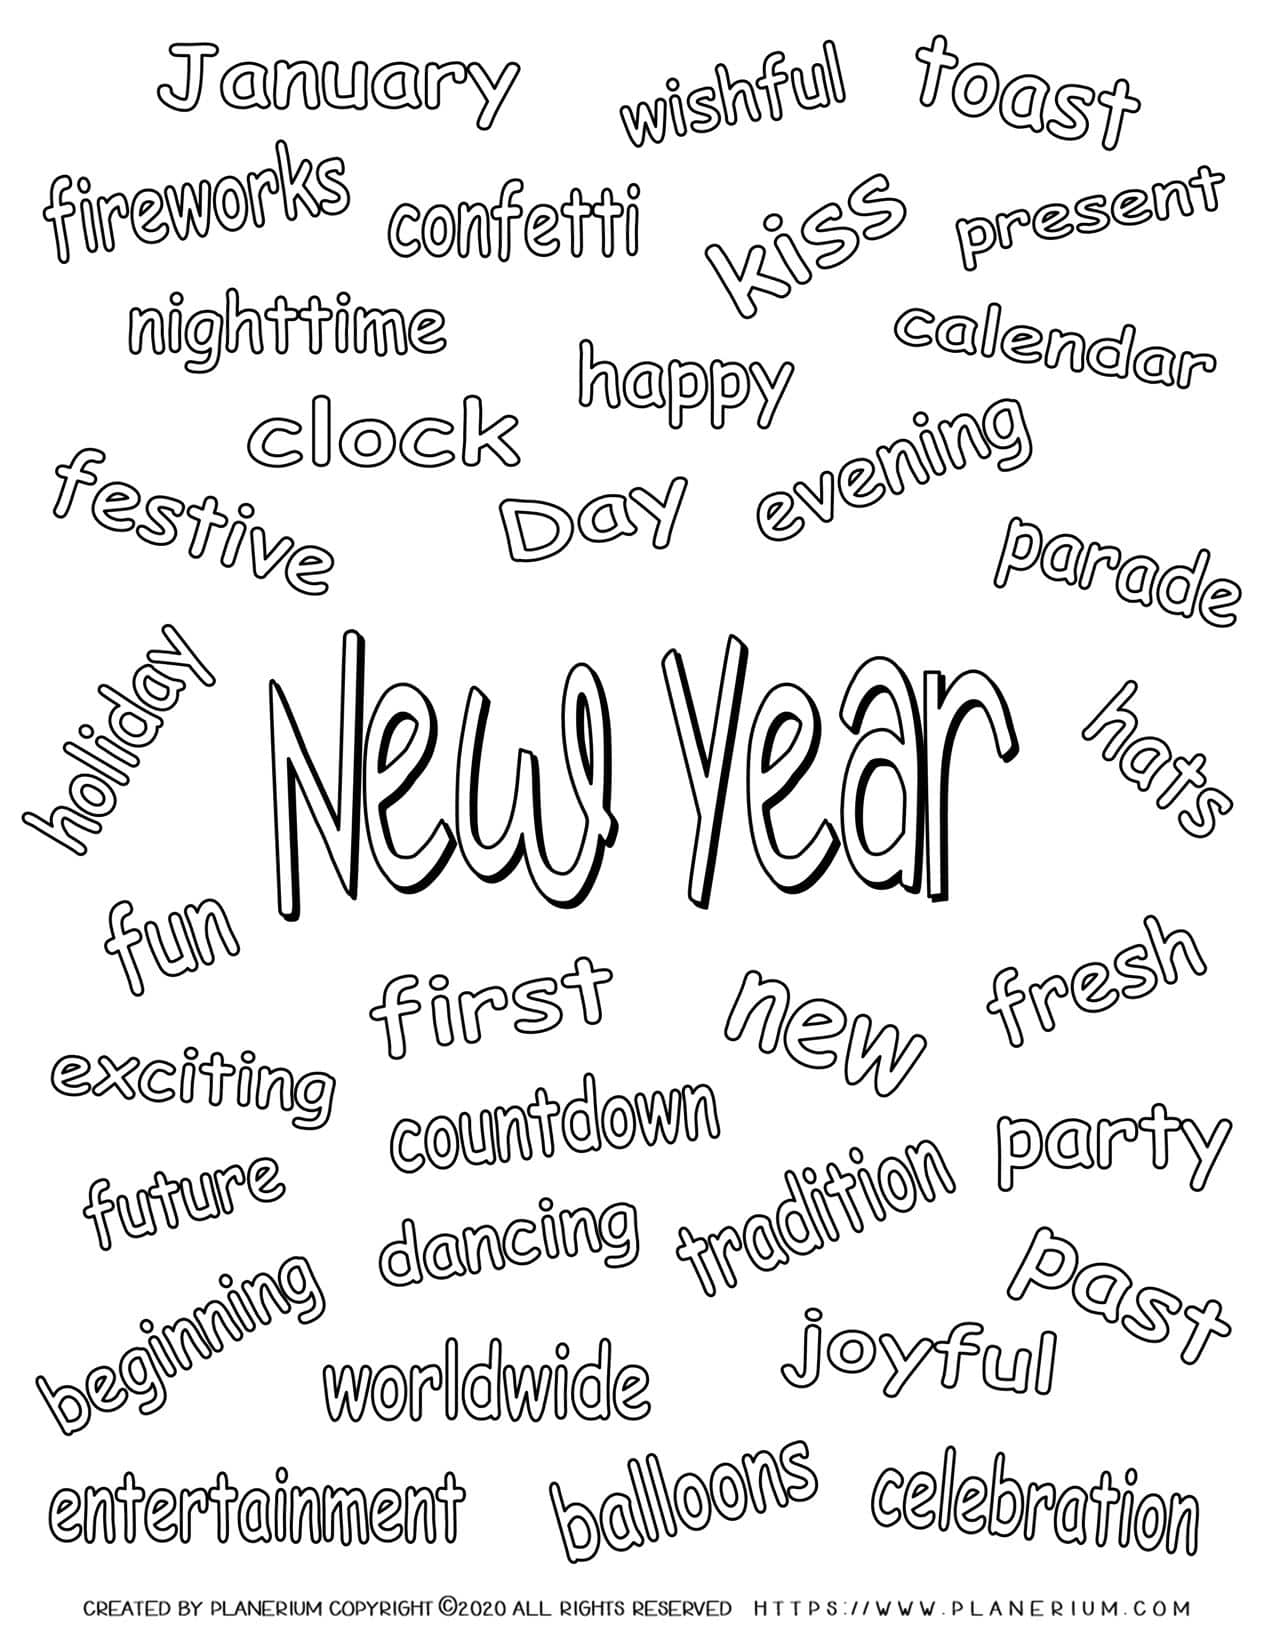 New Year Related Words | Planerium